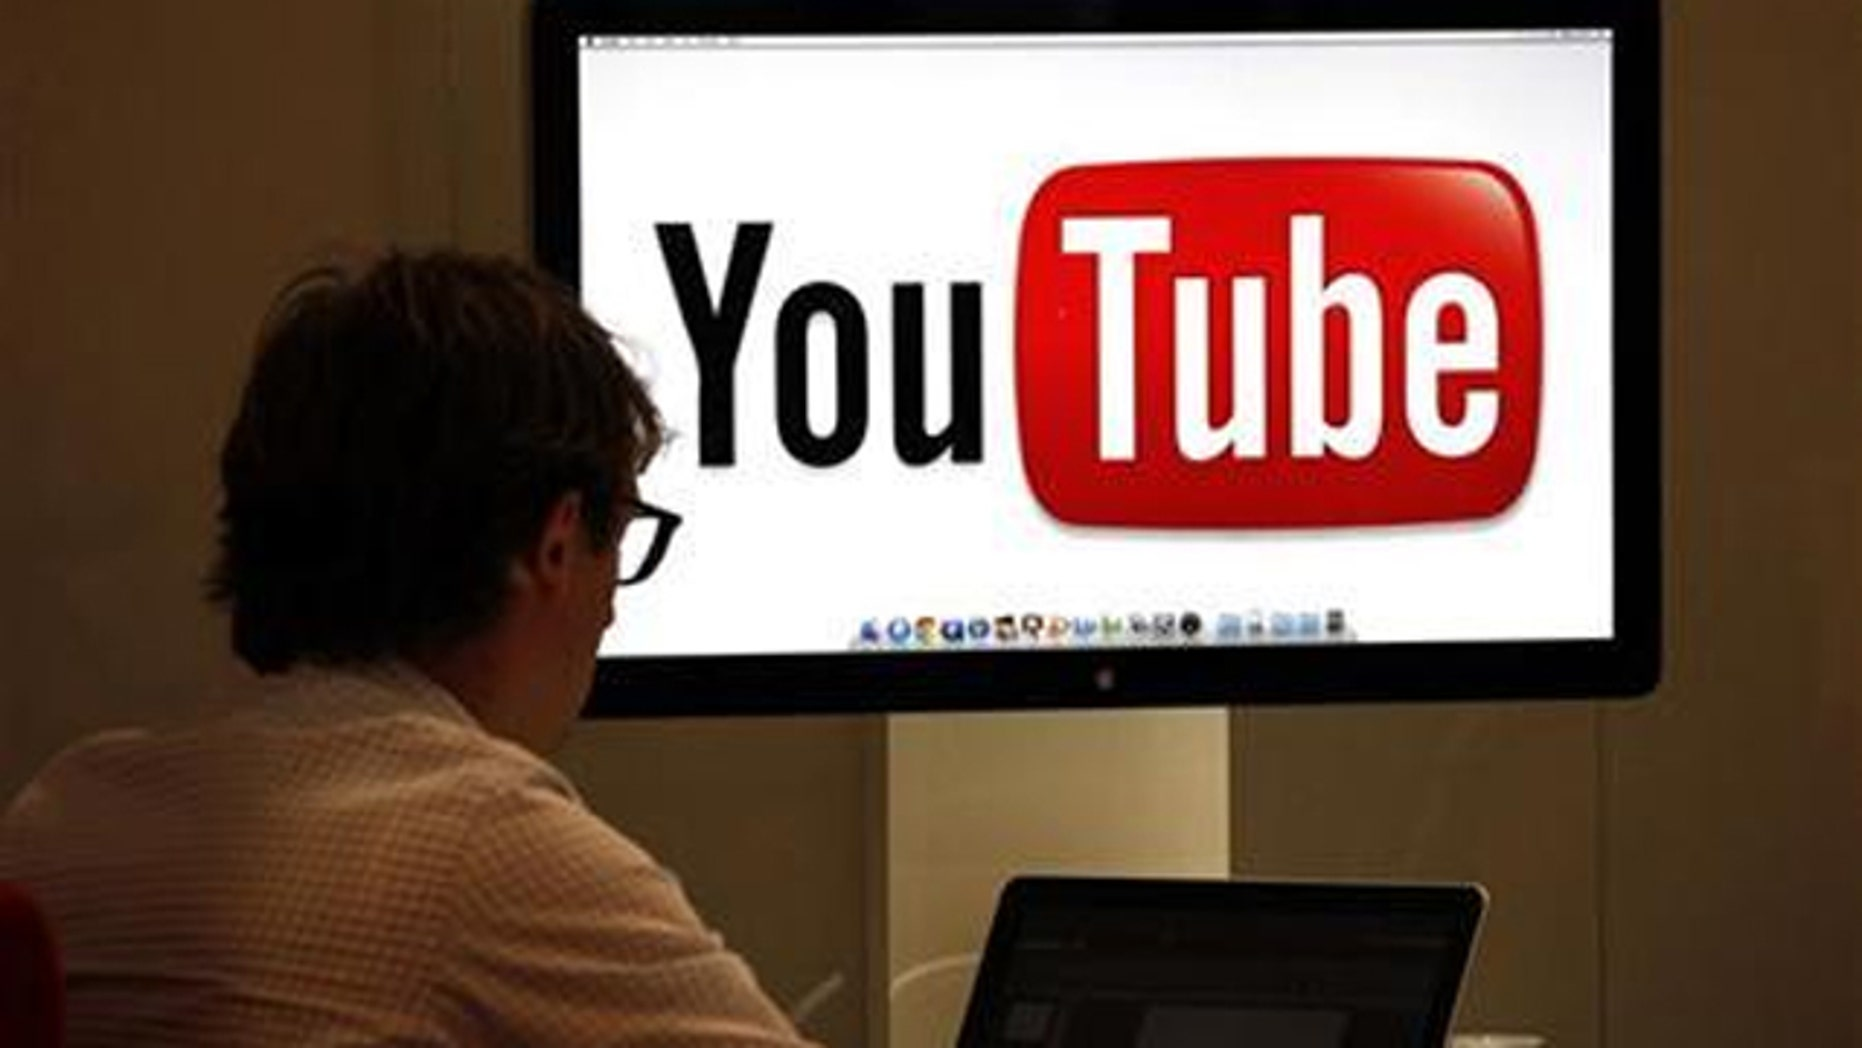 YouTube in trouble for copyright infringement.